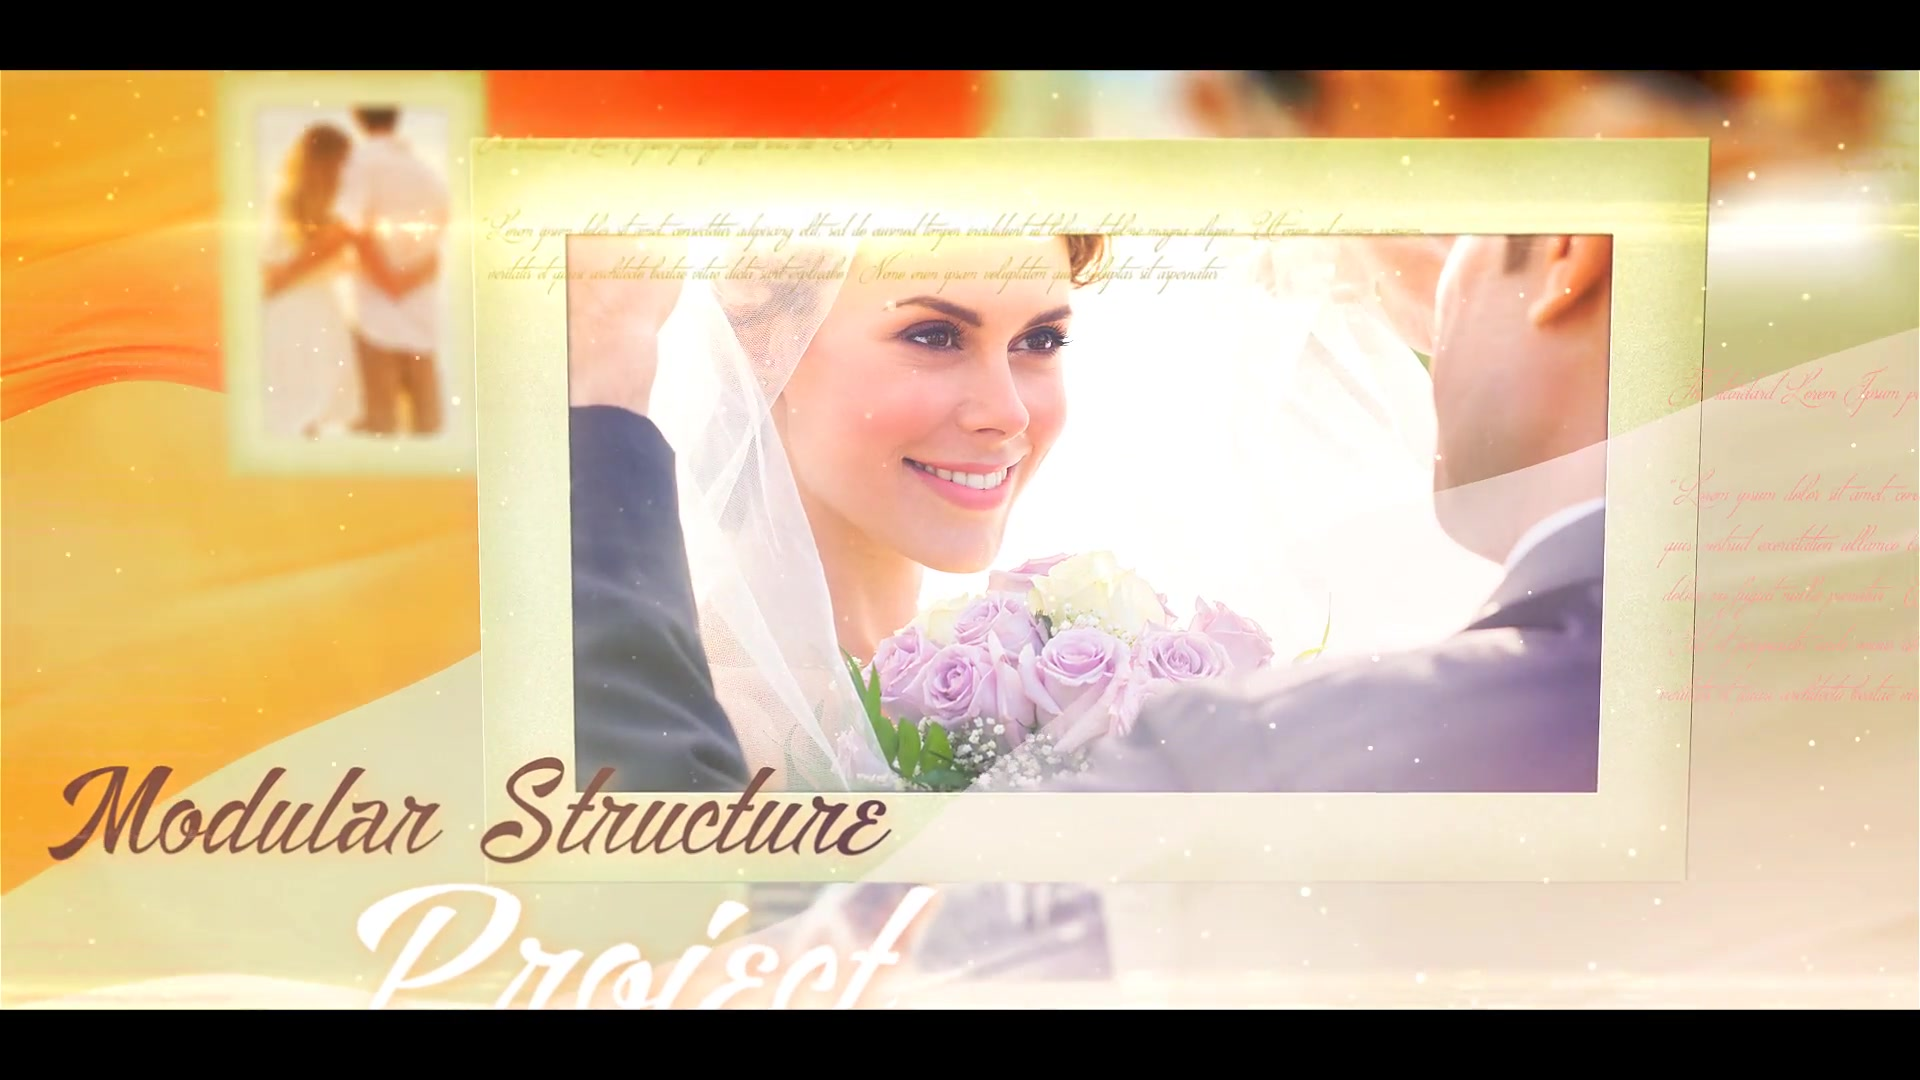 Lovely Slides of Romantic Moments - Download Videohive 19244789